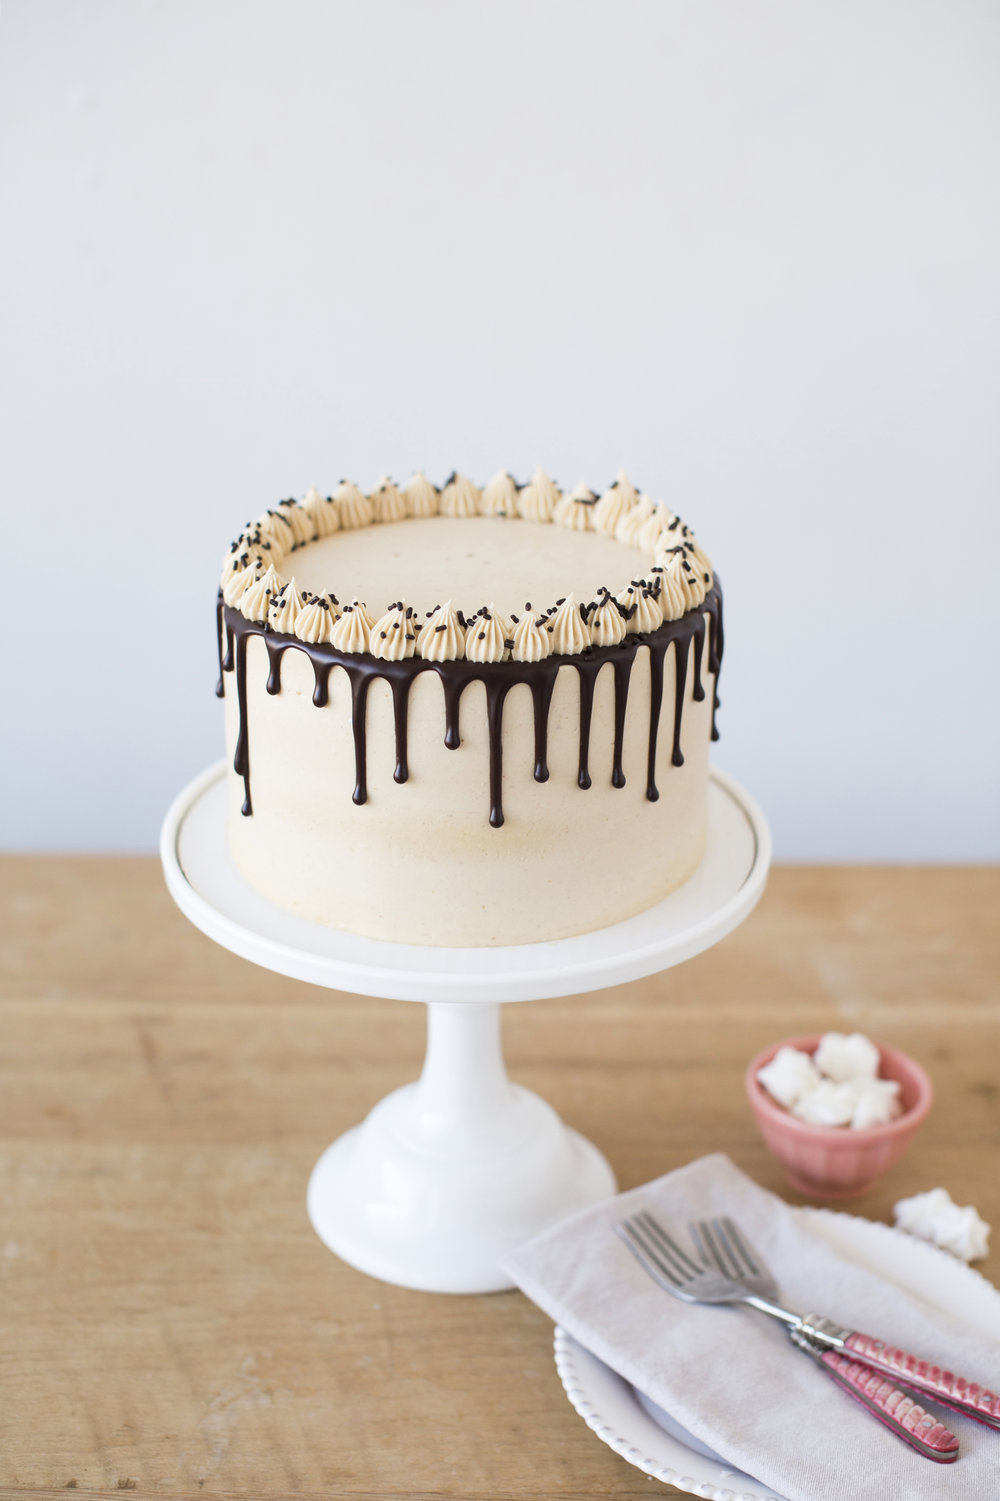 Chocolate Peanut Butter   Chocolate cake with peanut butter filling and icing    $47